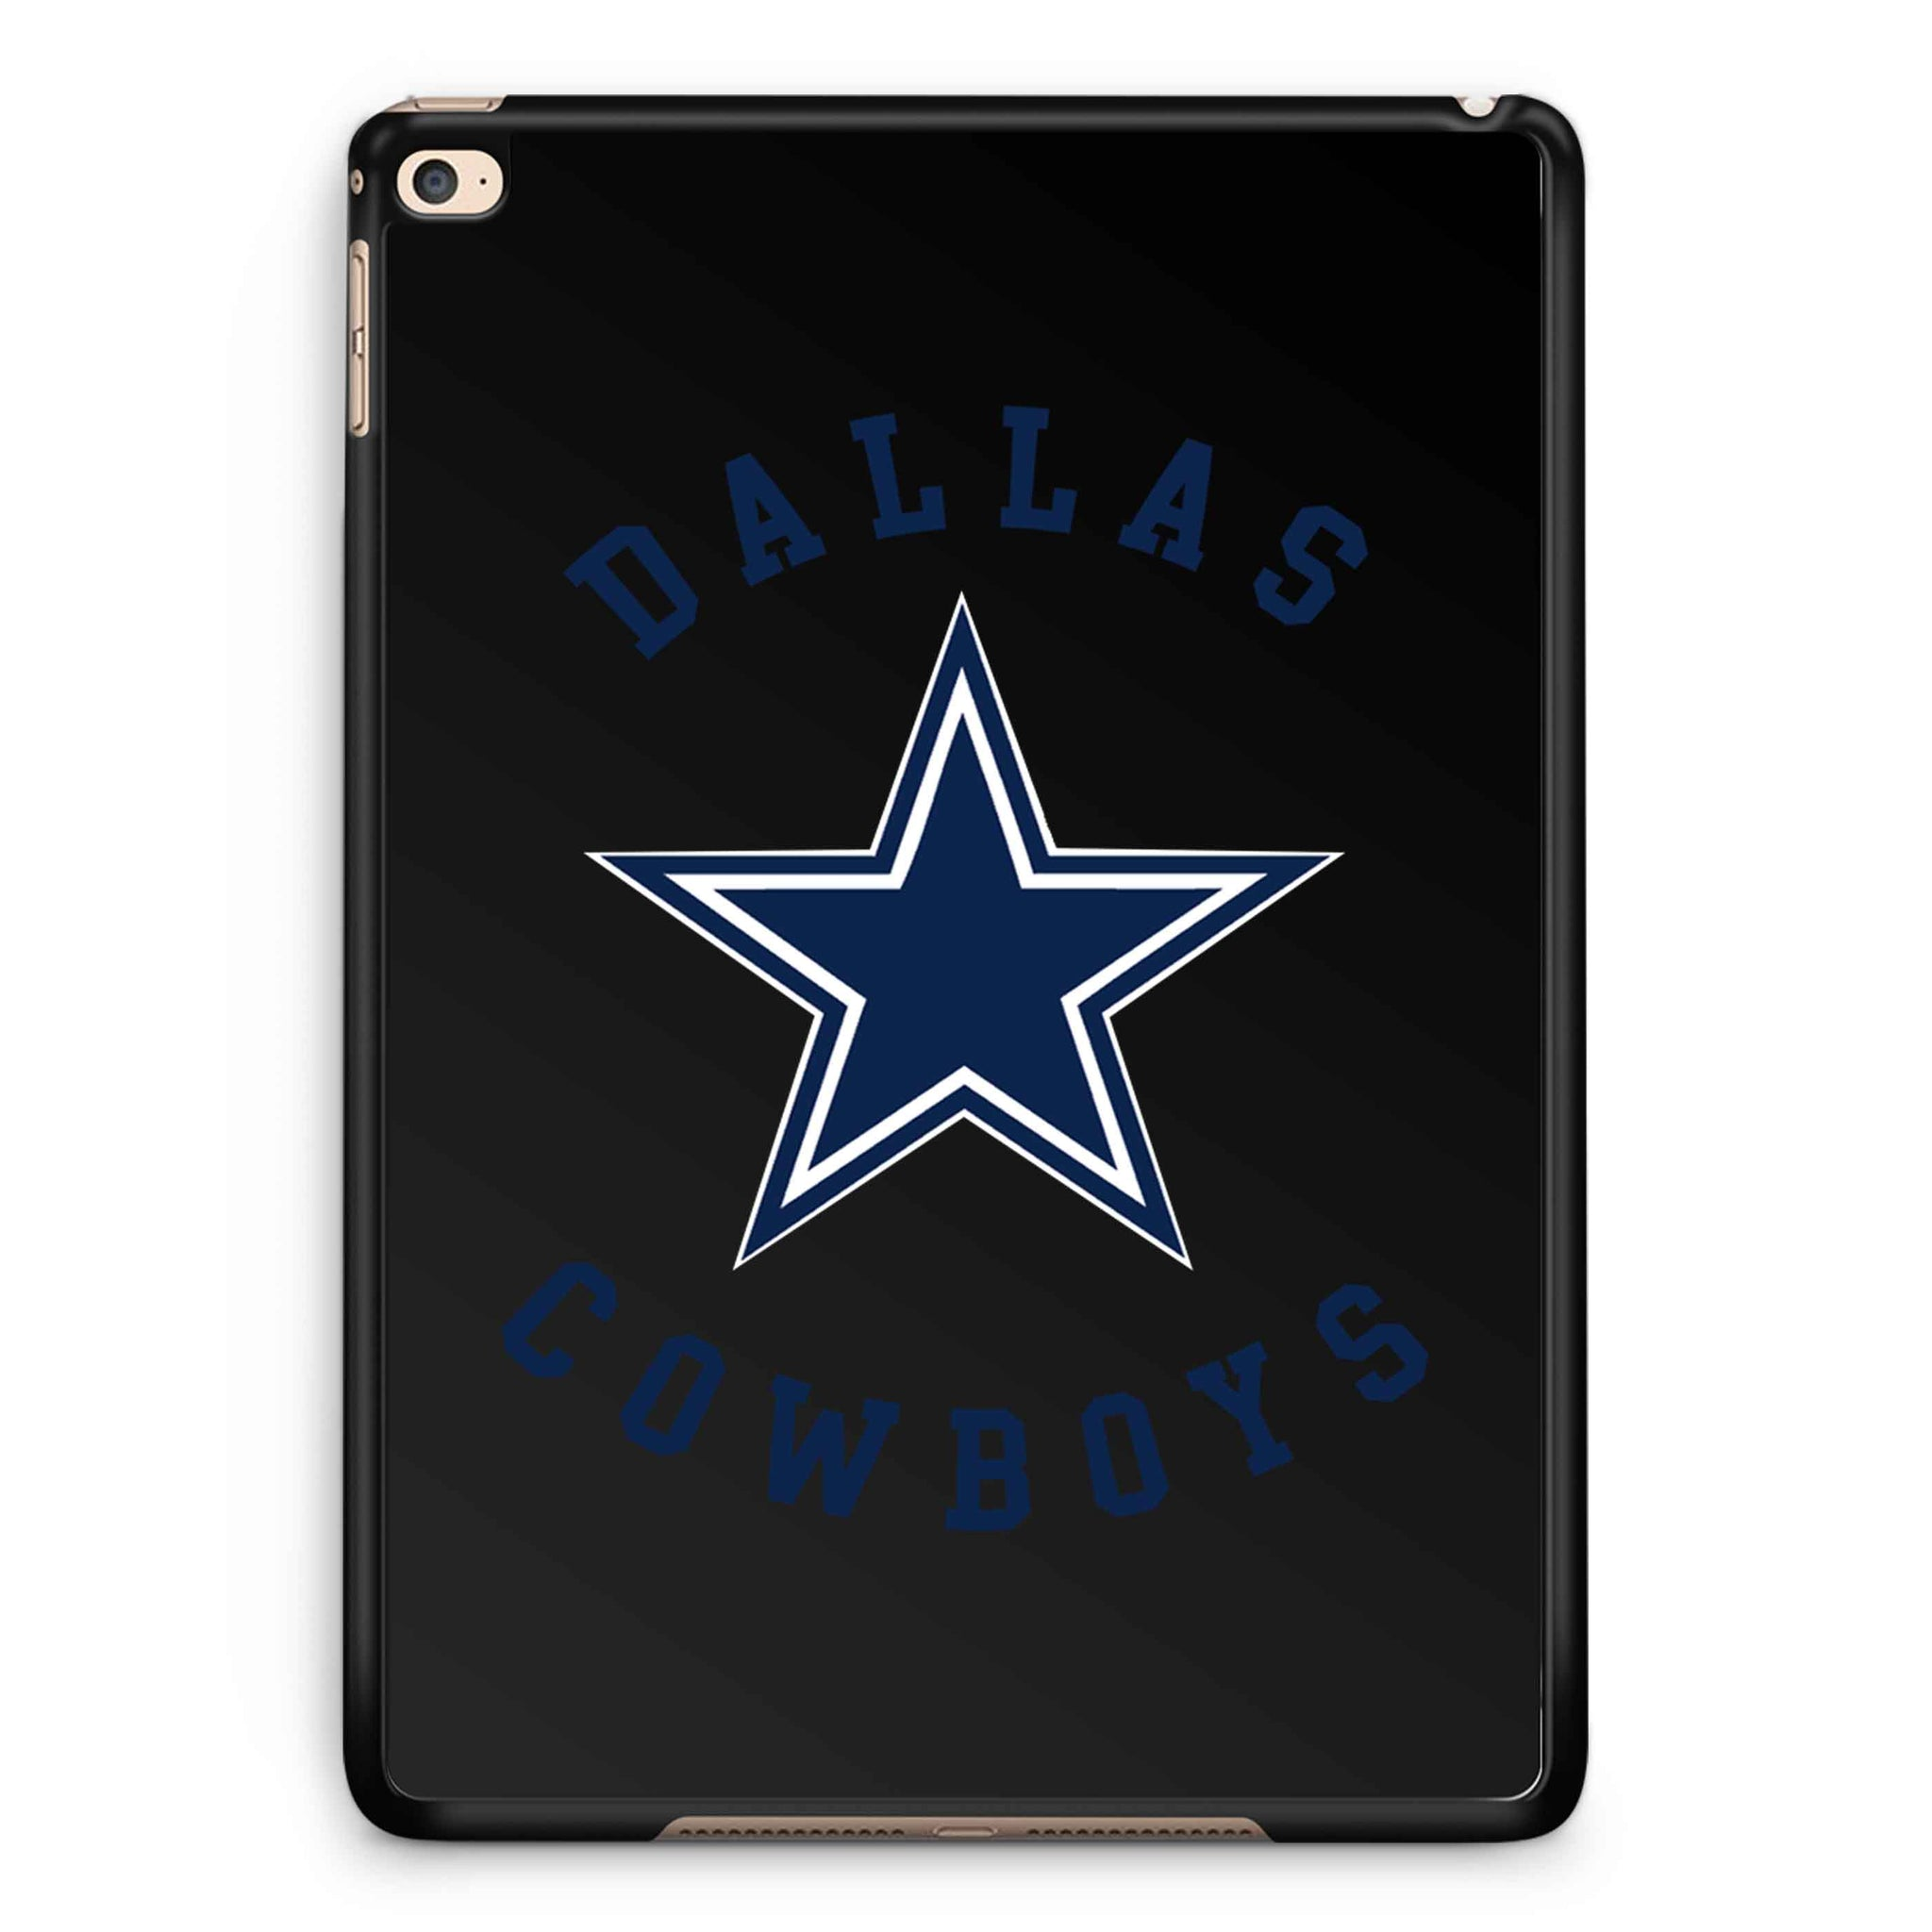 Dallas Cowboys iPad 2 / 3 / 4 / 5 / 6| iPad Air / Air 2 | iPad Mini 1 / 2 / 3 / 4 | iPad Pro Case